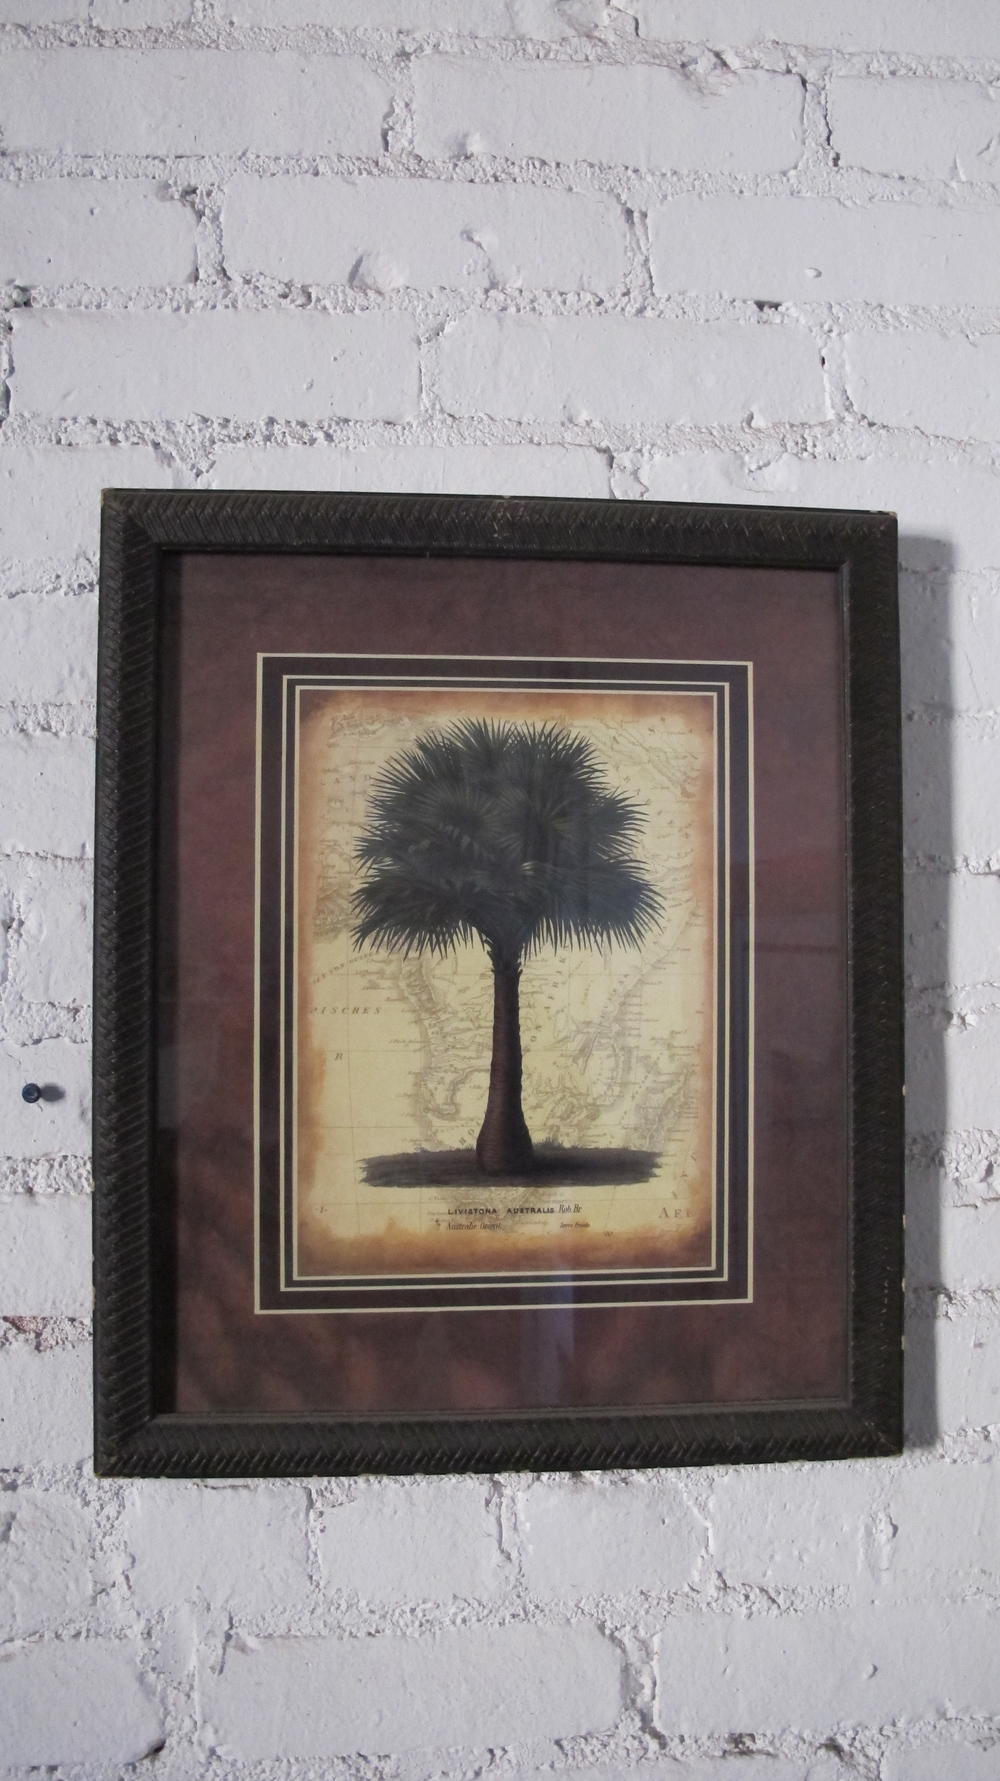 Framed Tree with border